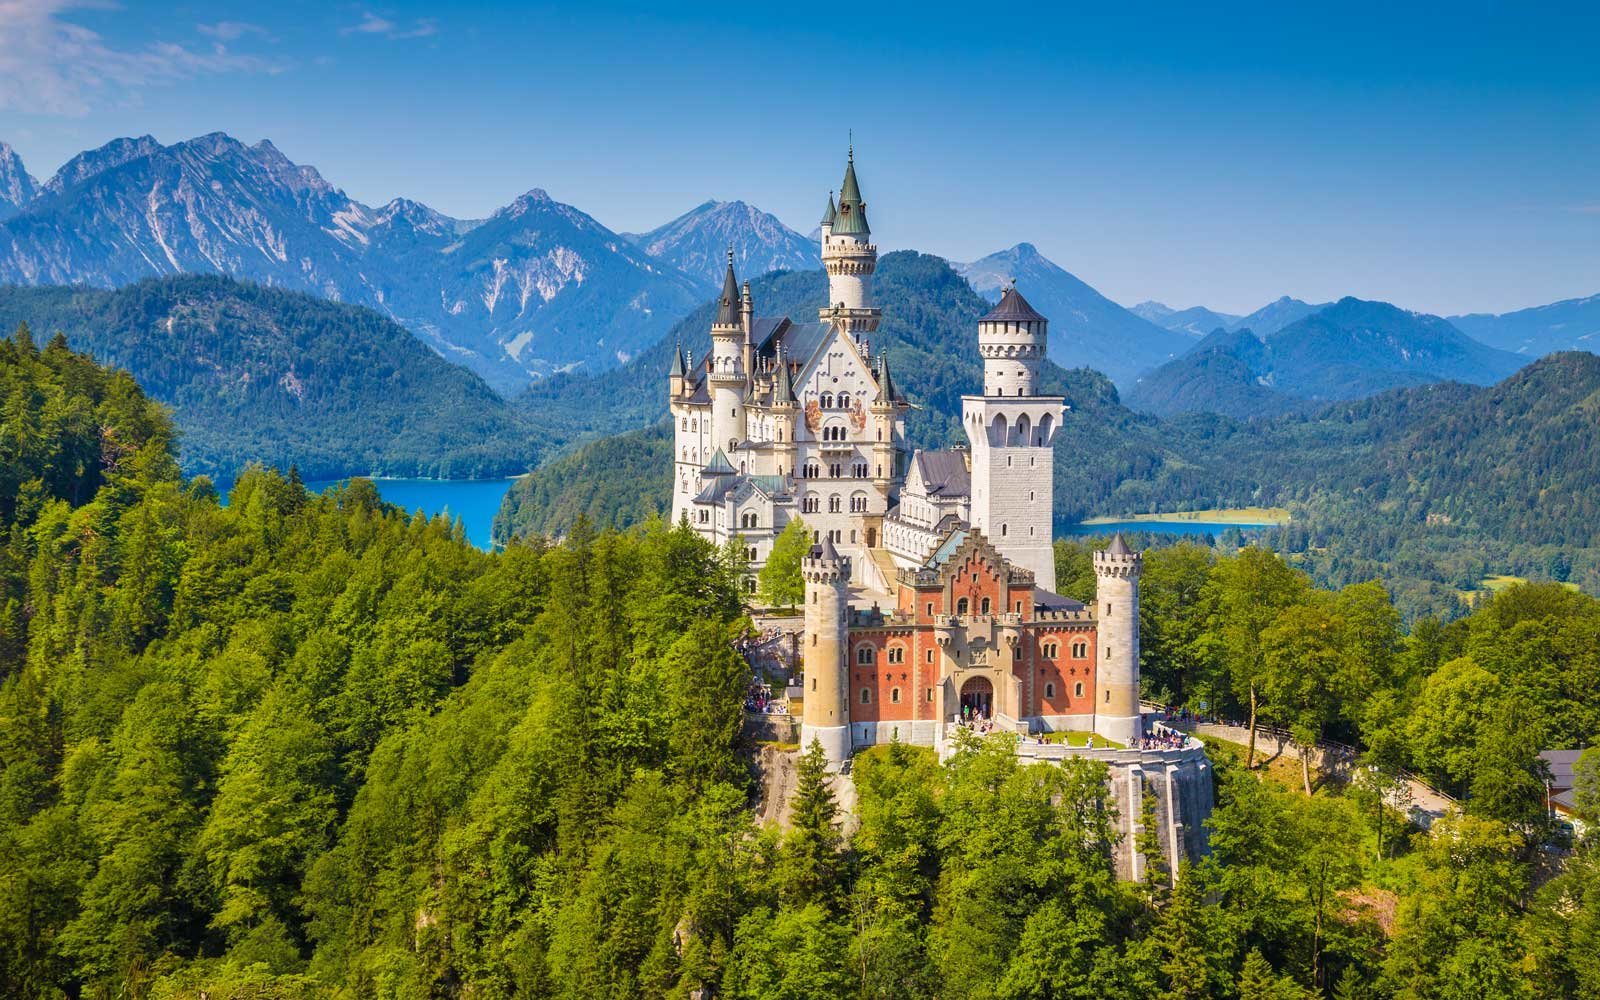 Neuschwanstein Castle in Summer